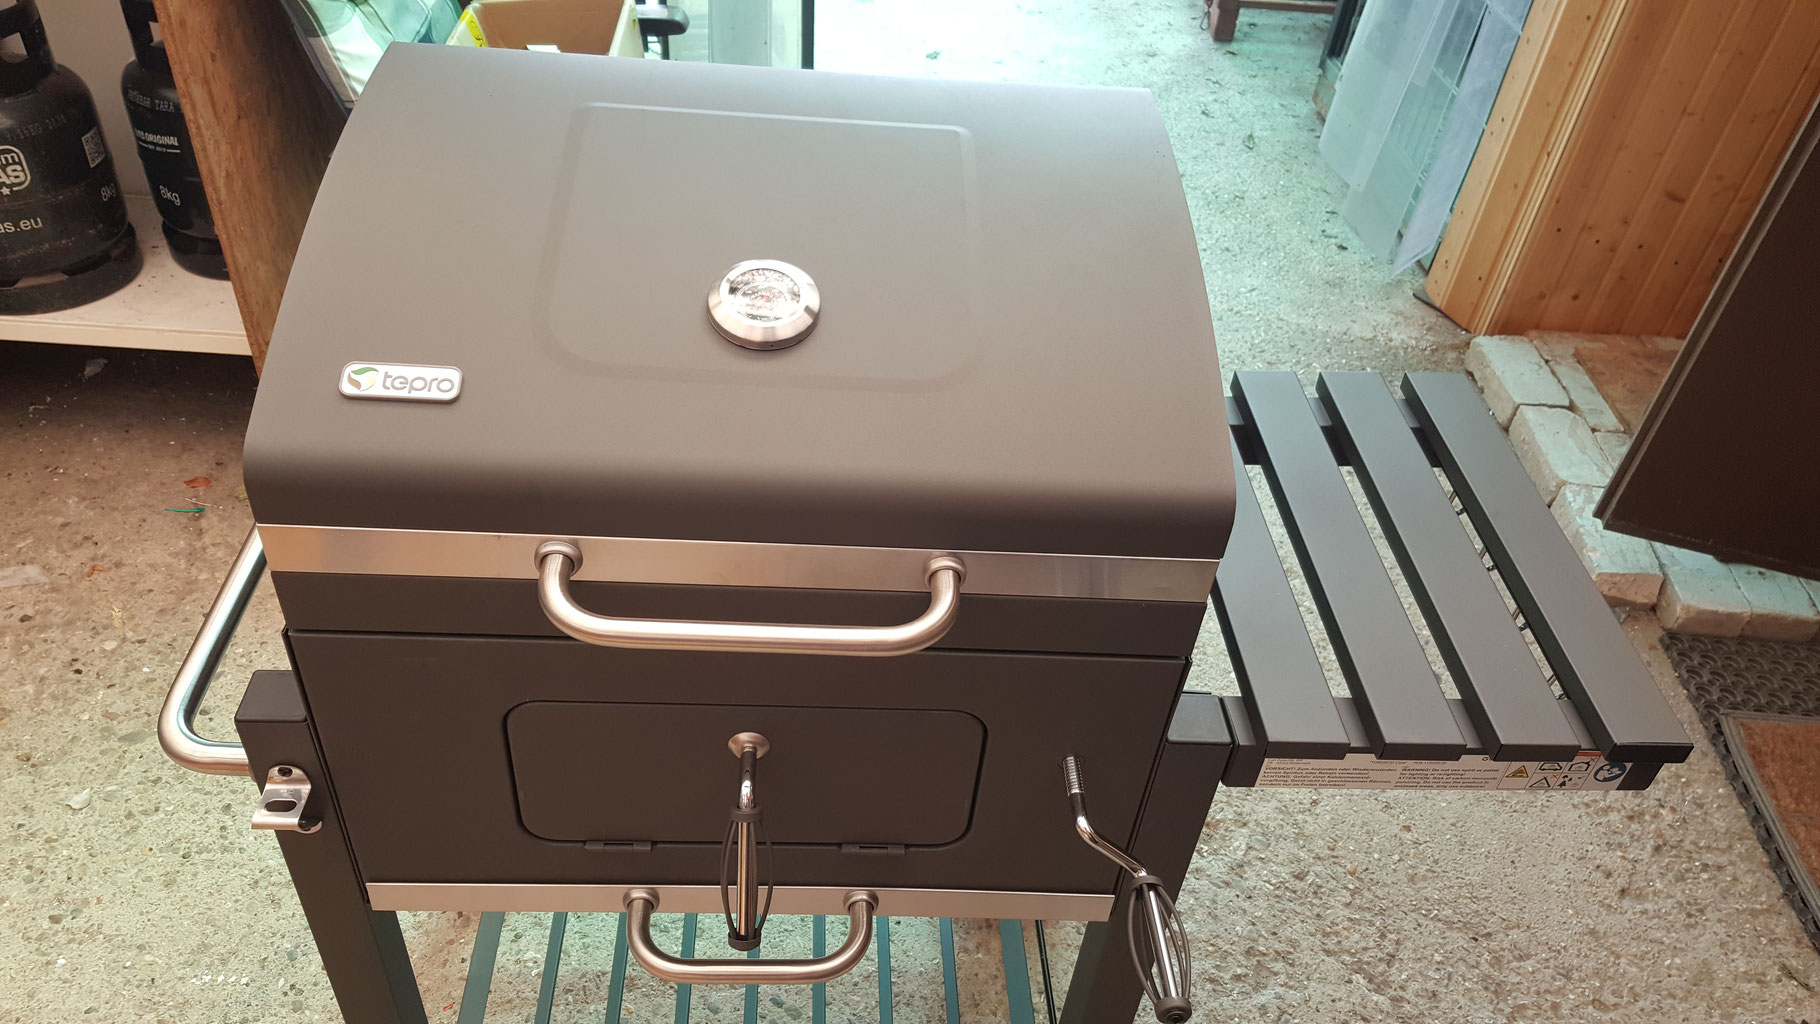 Enders Gasgrill Boston Black 4 Ik Zubehör : Enders gasgrill monroe s turbo hertie